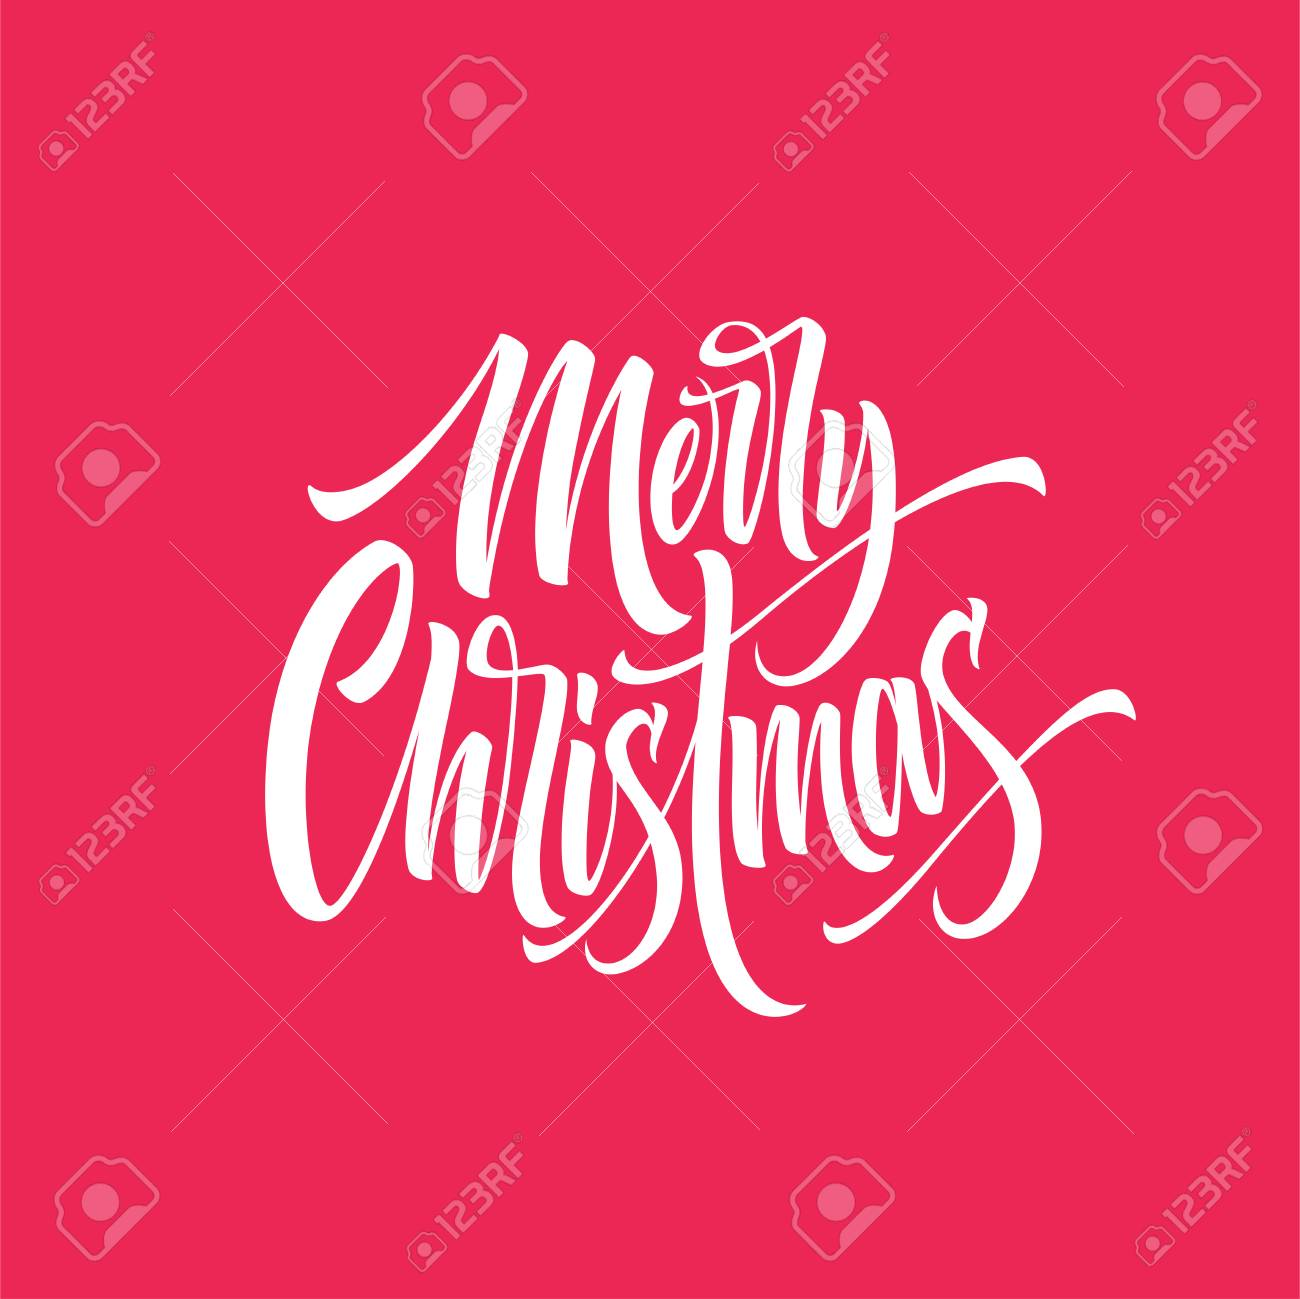 Merry Christmas In Cursive.Merry Christmas Hand Drawn Lettering Xmas Cursive Calligraphy